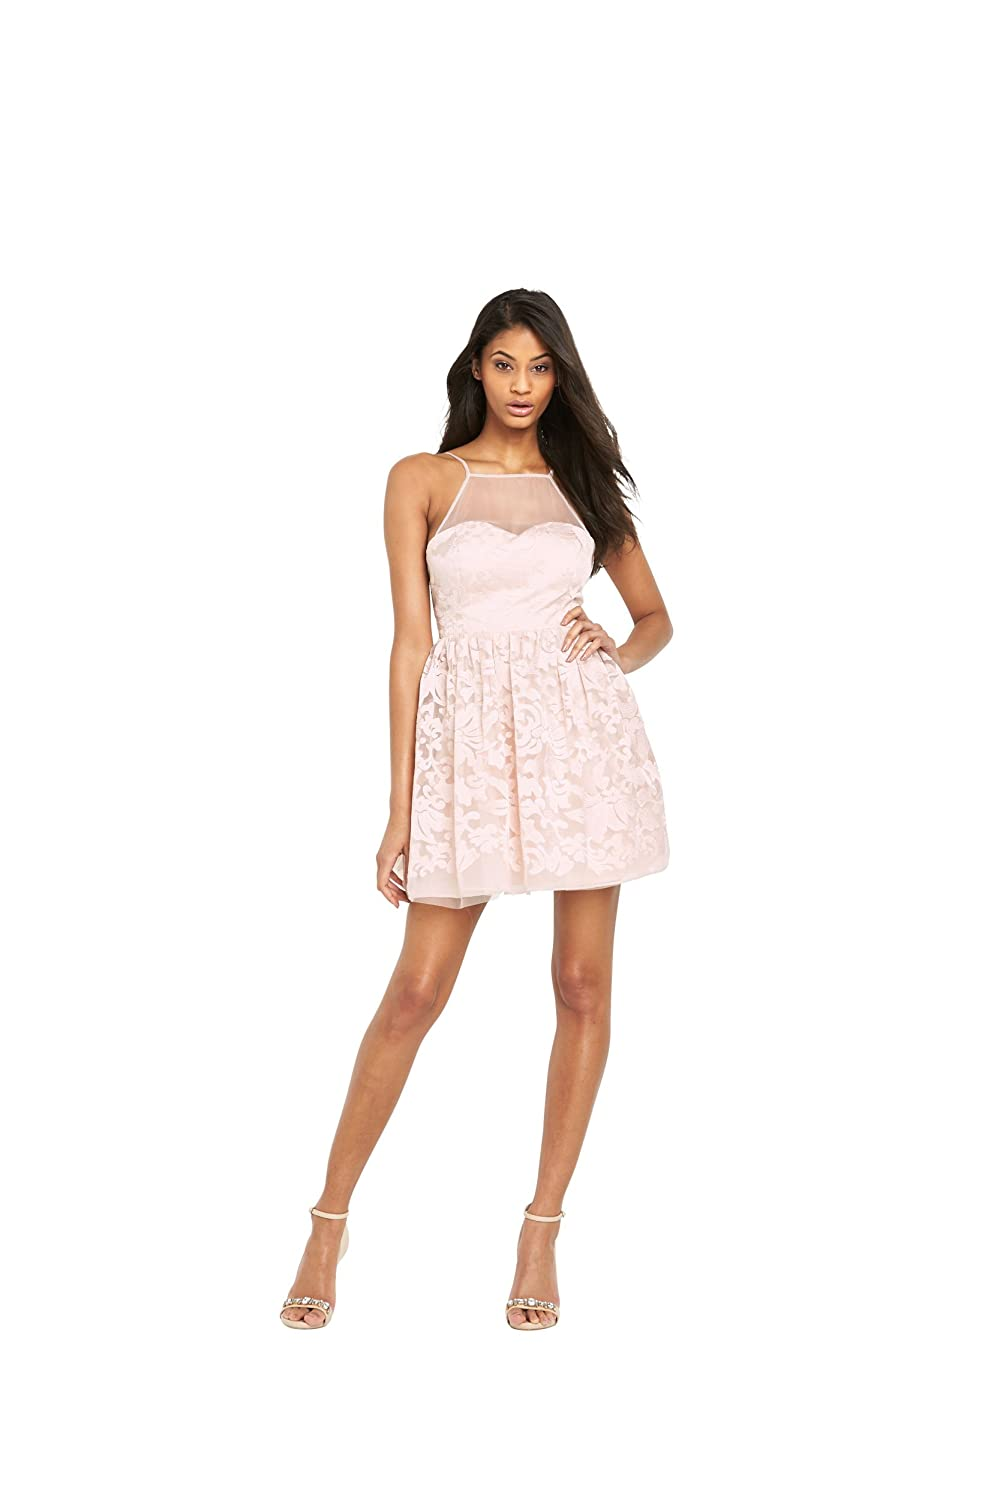 Lipsy Ariana Grande Mesh Top Prom Dress In Nude Size 12: Amazon.co.uk: Clothing